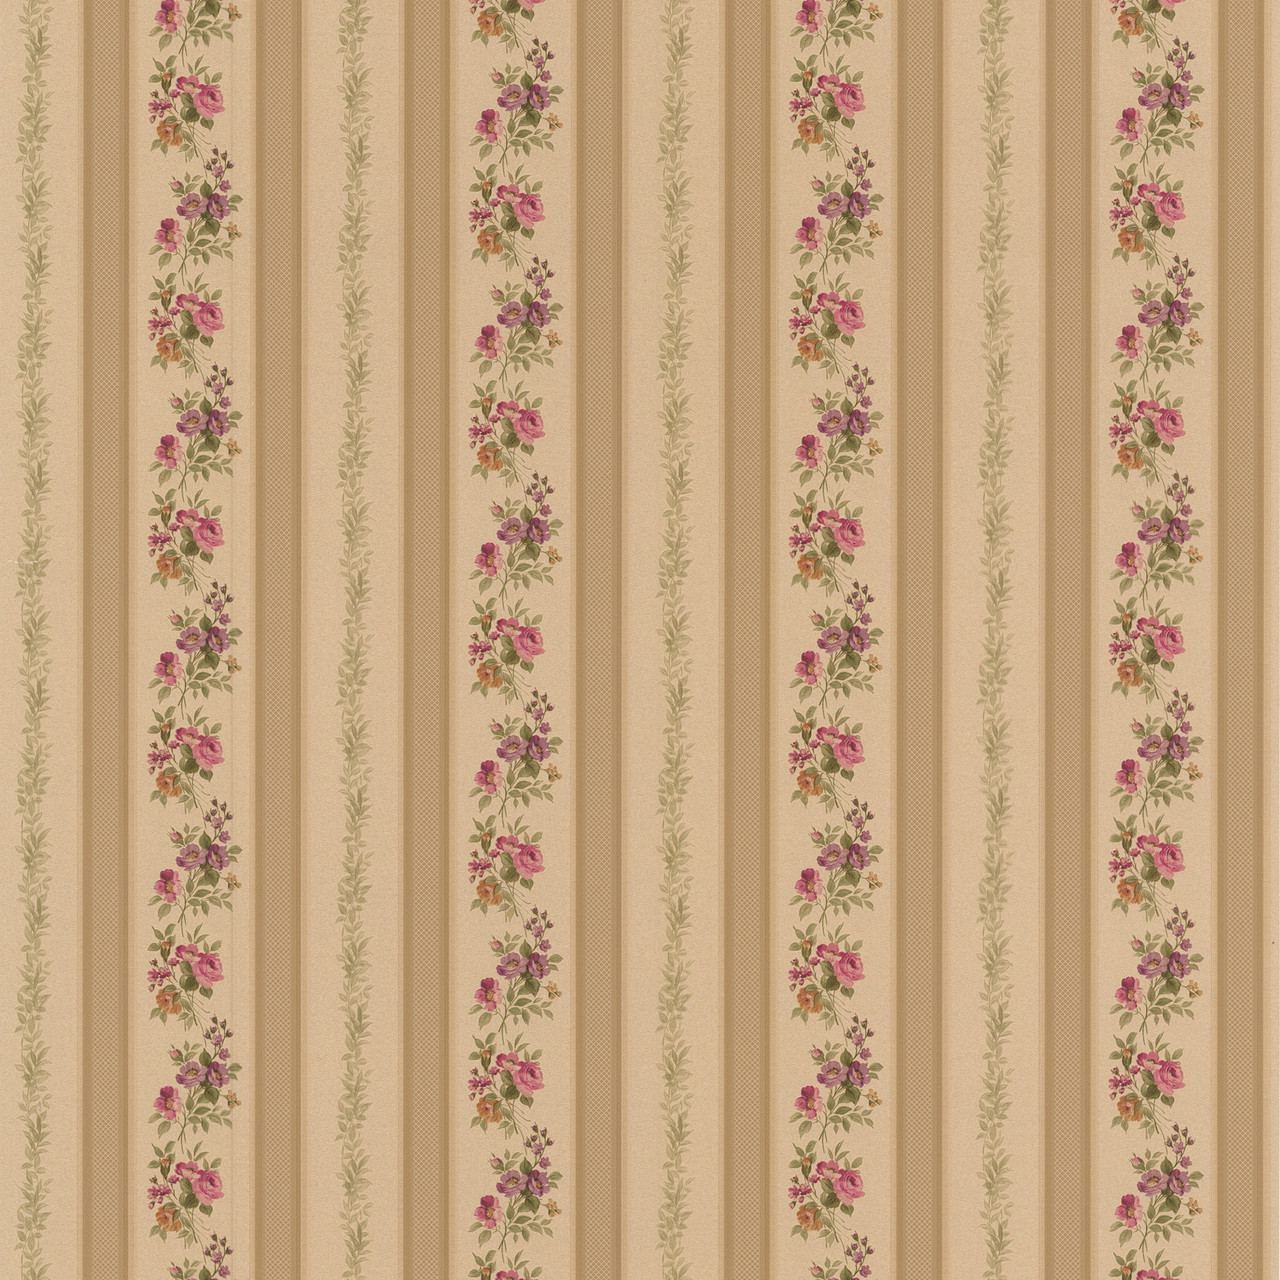 414 56032 Princess Gold Floral Stripe Wallpaper